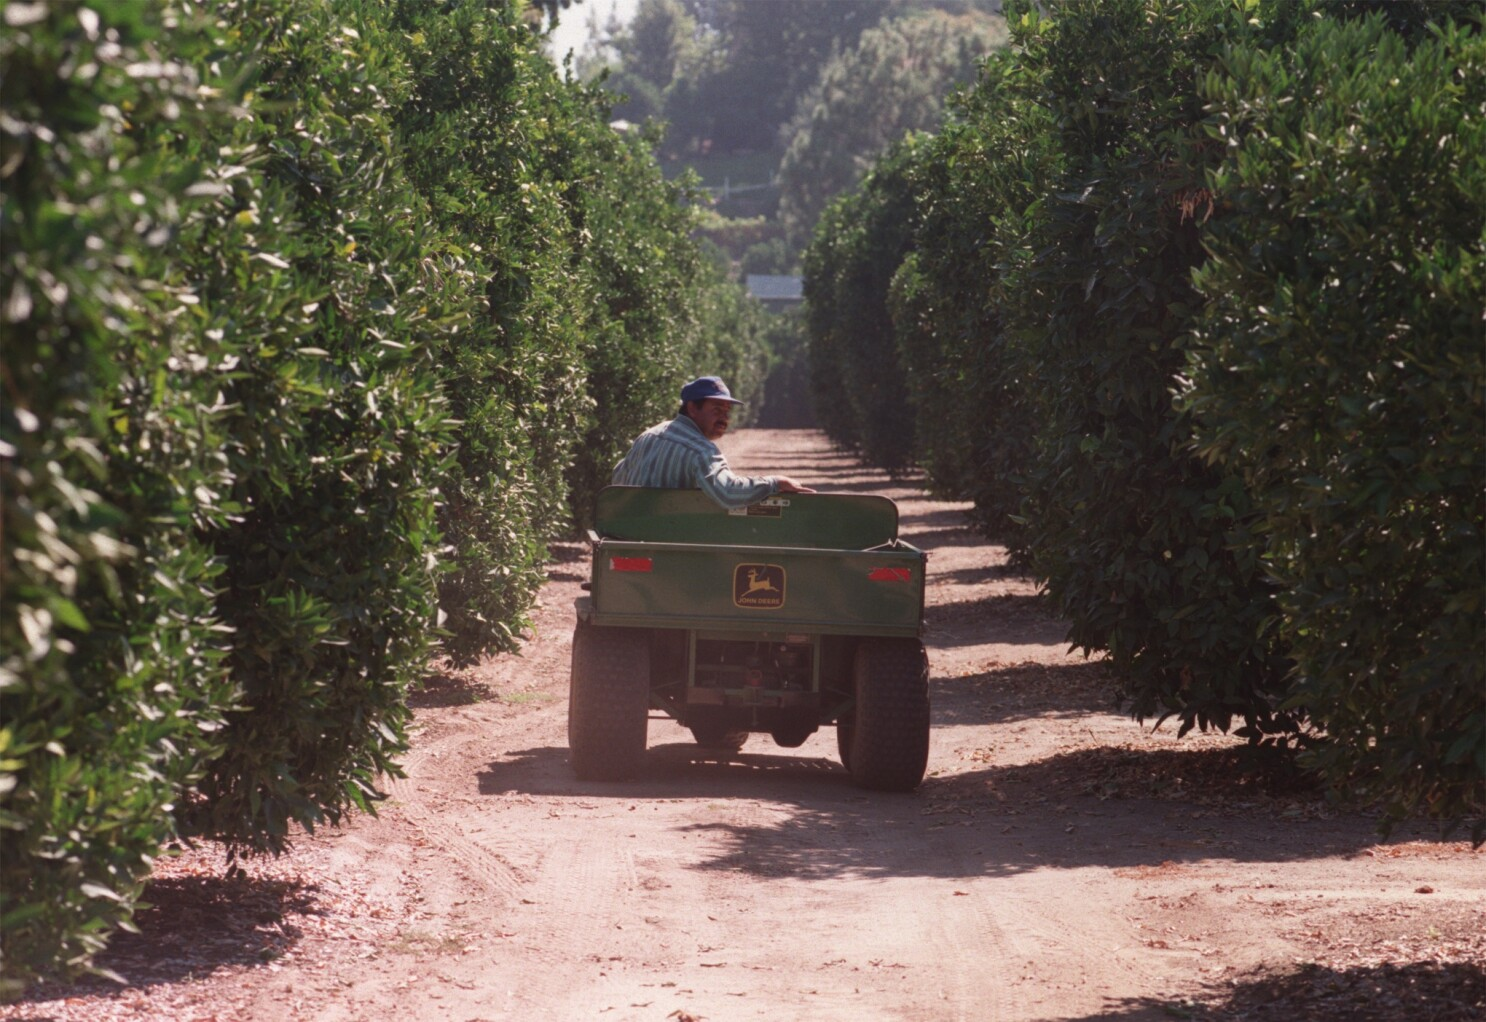 Newsletter: The uncertain fate of the San Fernando Valley's last remaining commercial citrus grove